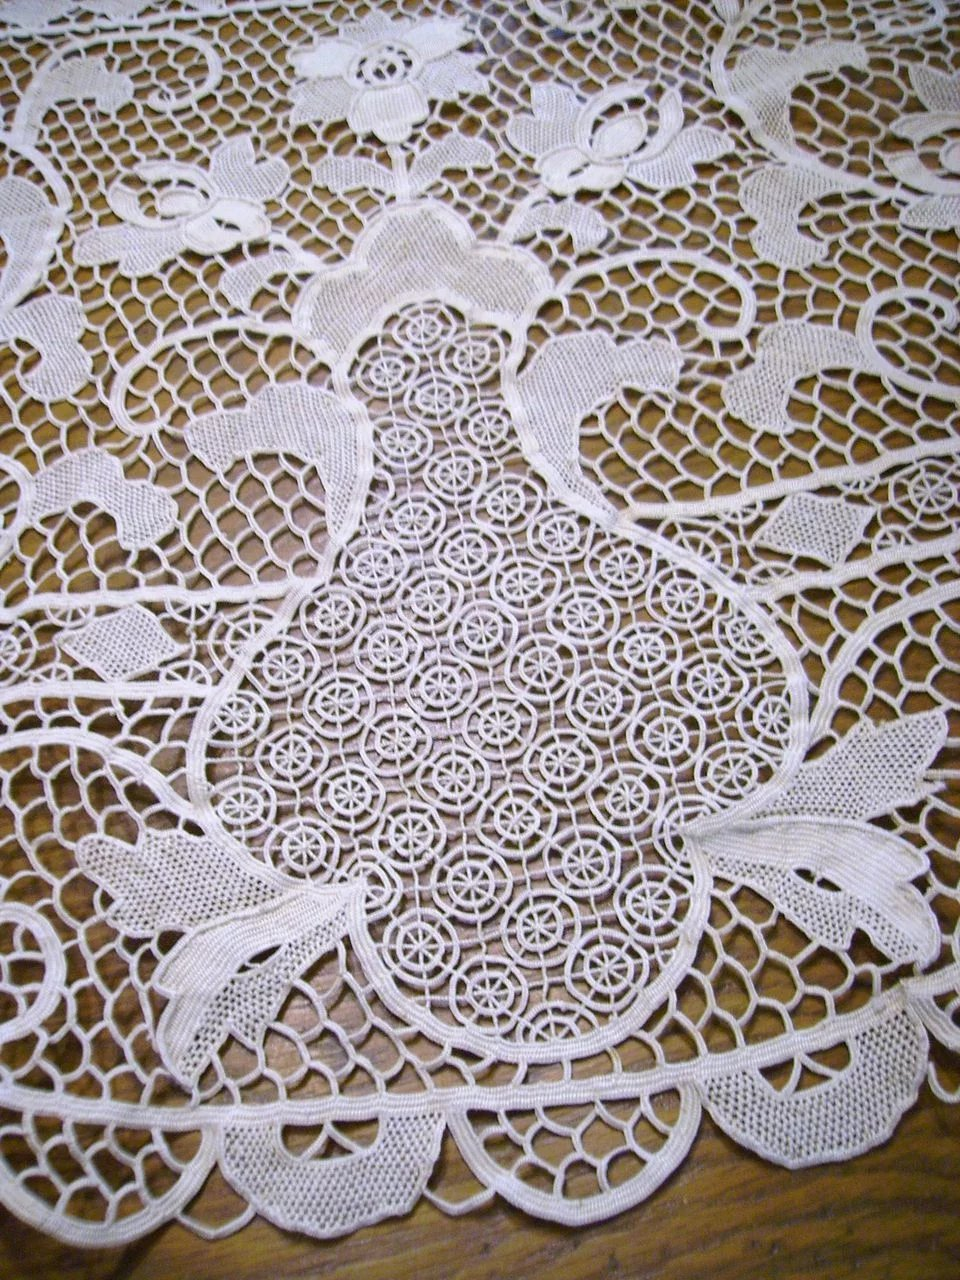 Round Italian Reticella Needle Lace Tablecloth 90 Inches To Expand